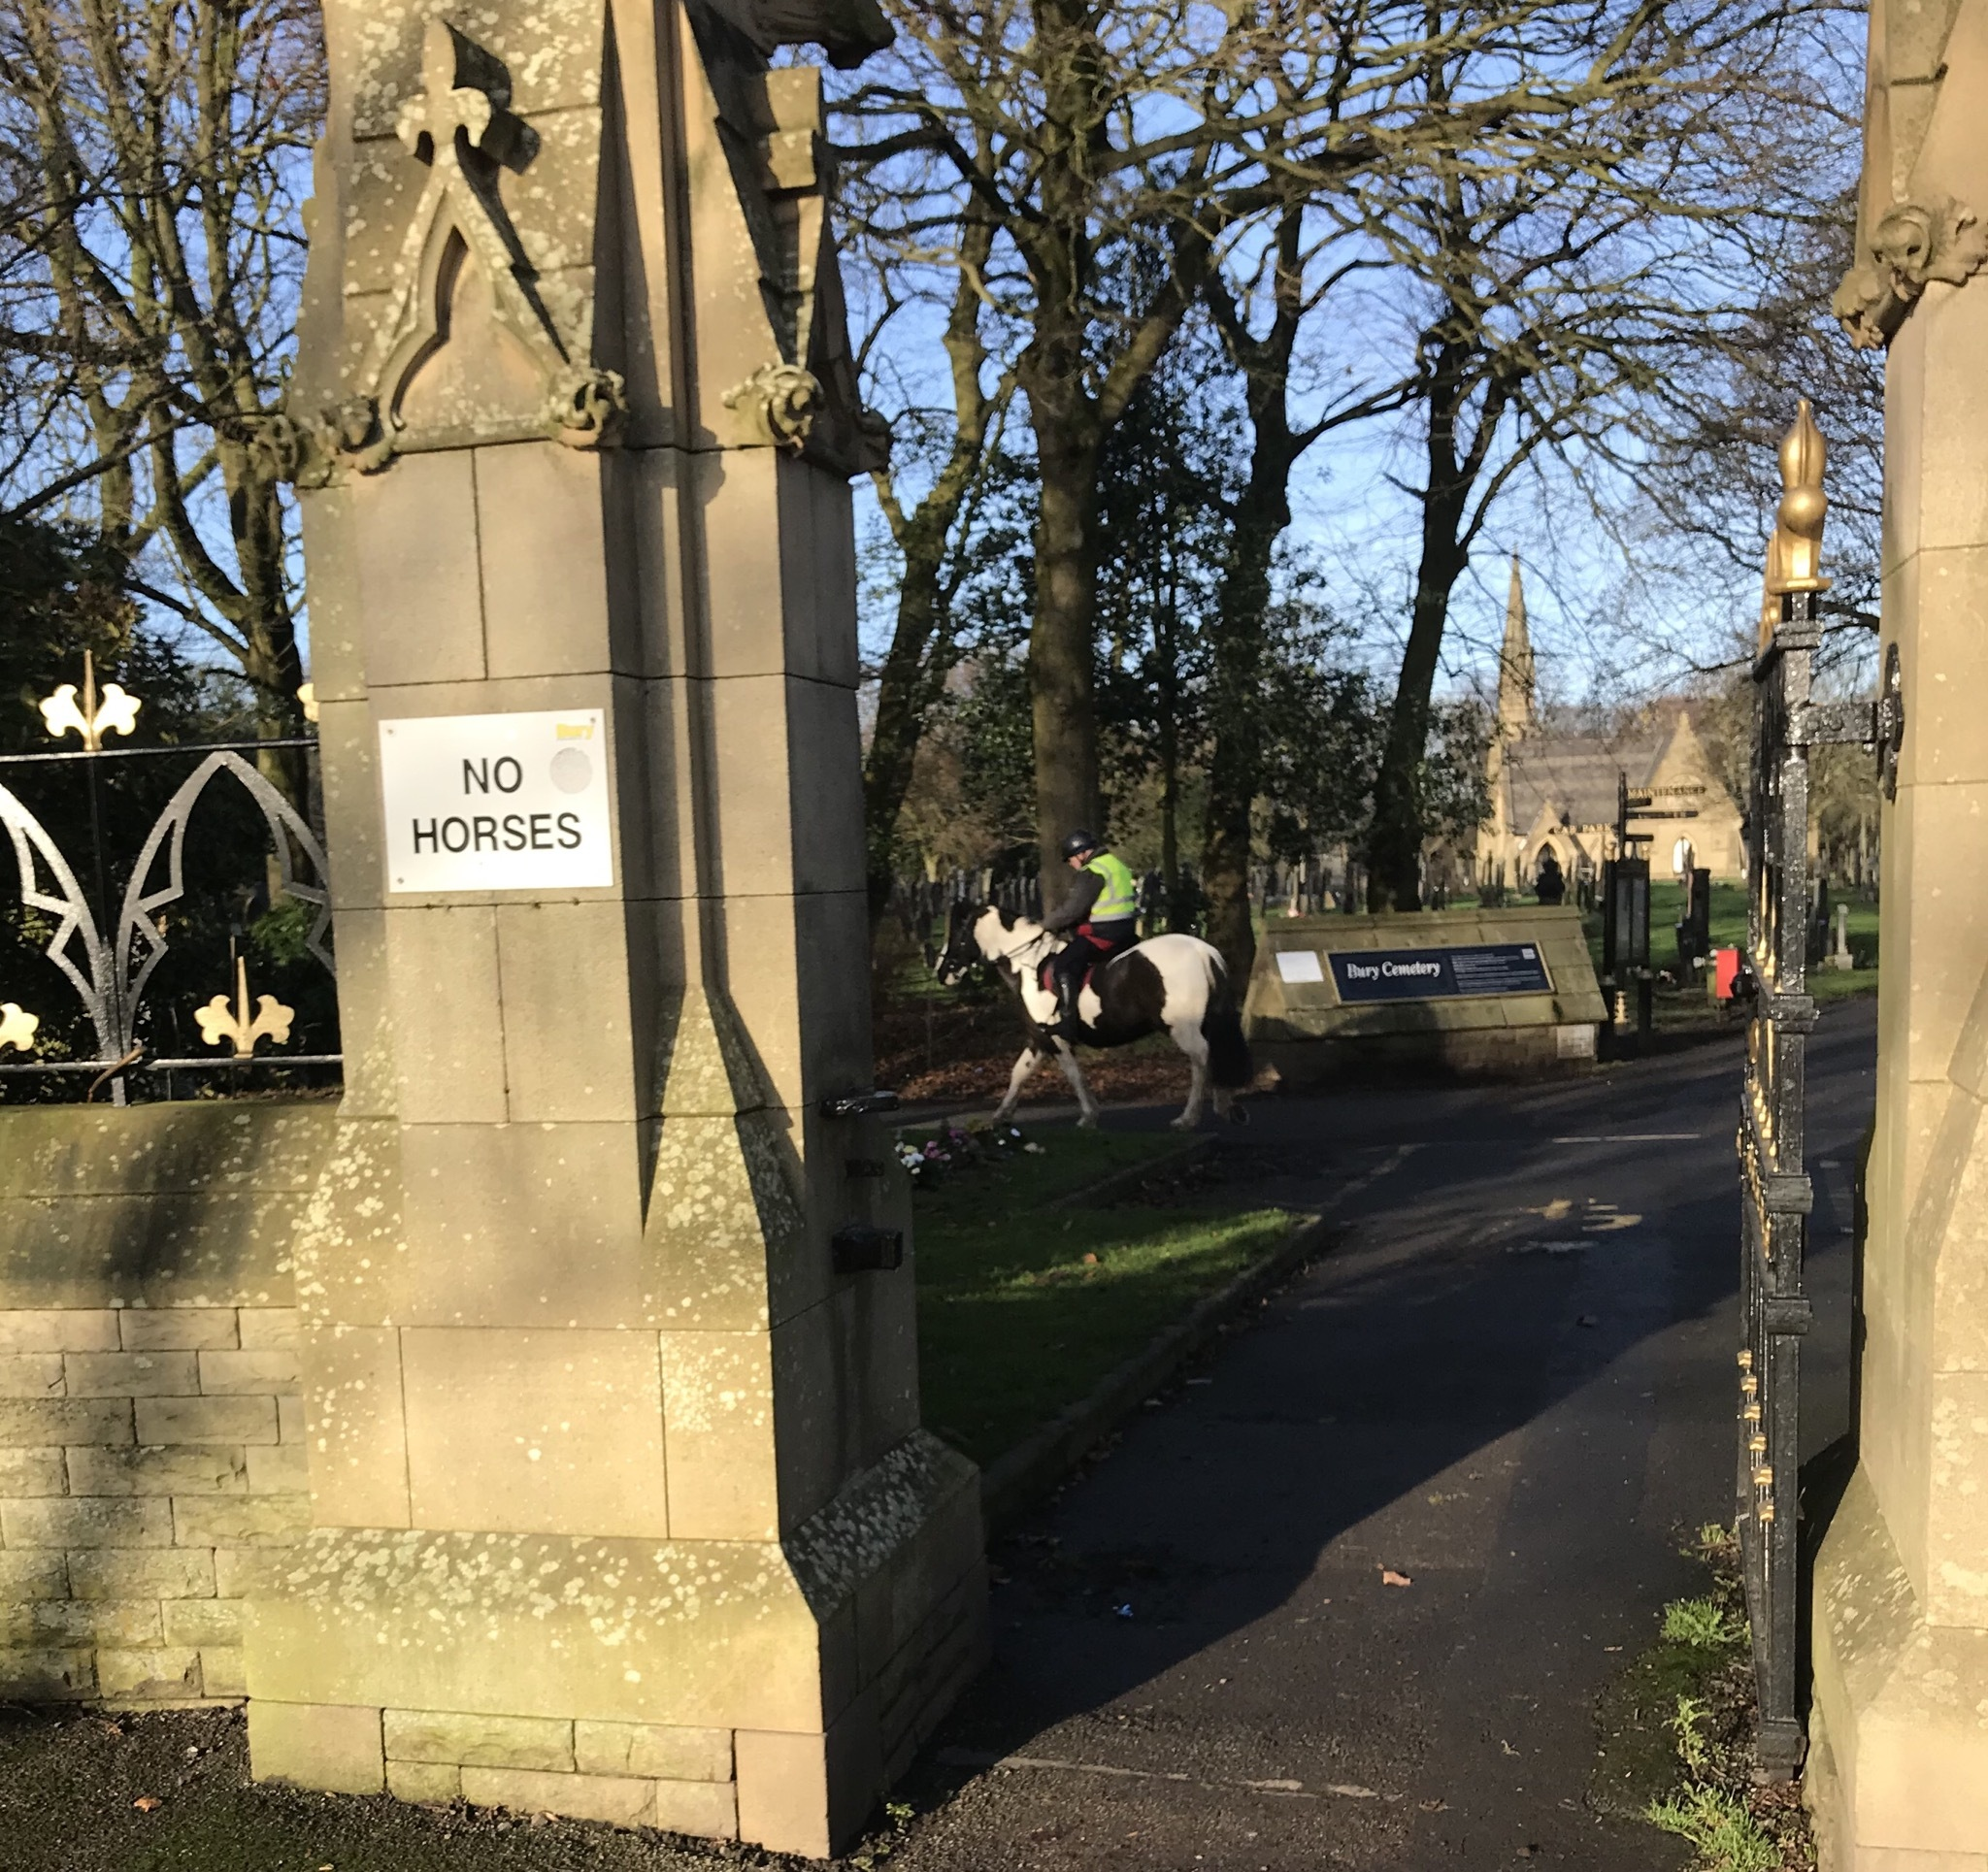 Horse rider ignores sign at Bury cemetery